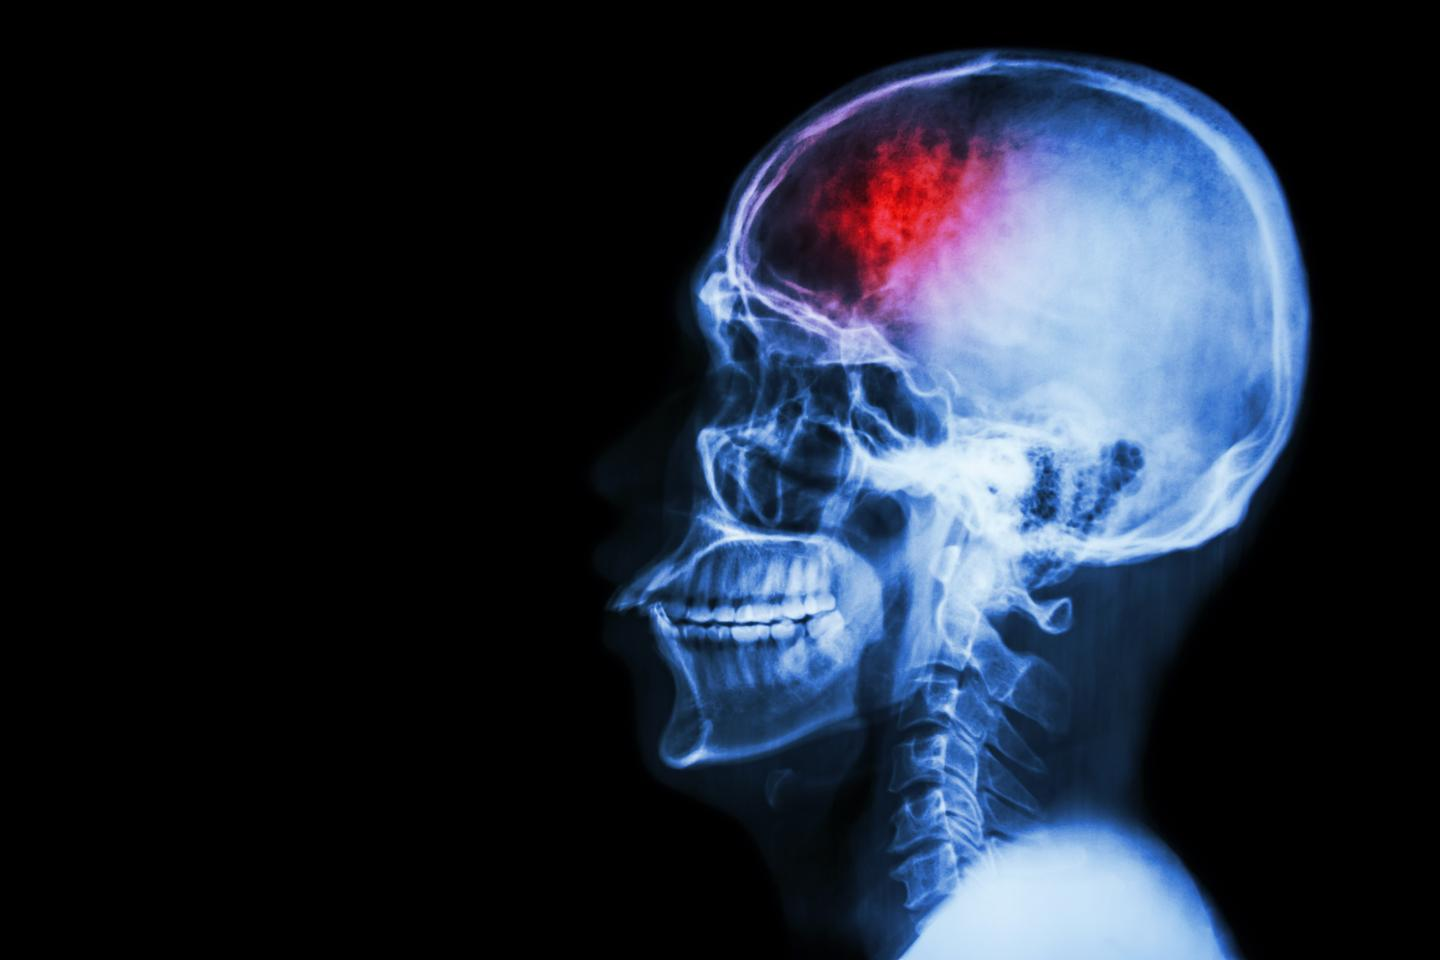 London researchers have revealed that stroke patients in a pilot study all showed improvements after stem cell therapy (Photo: Shutterstock)